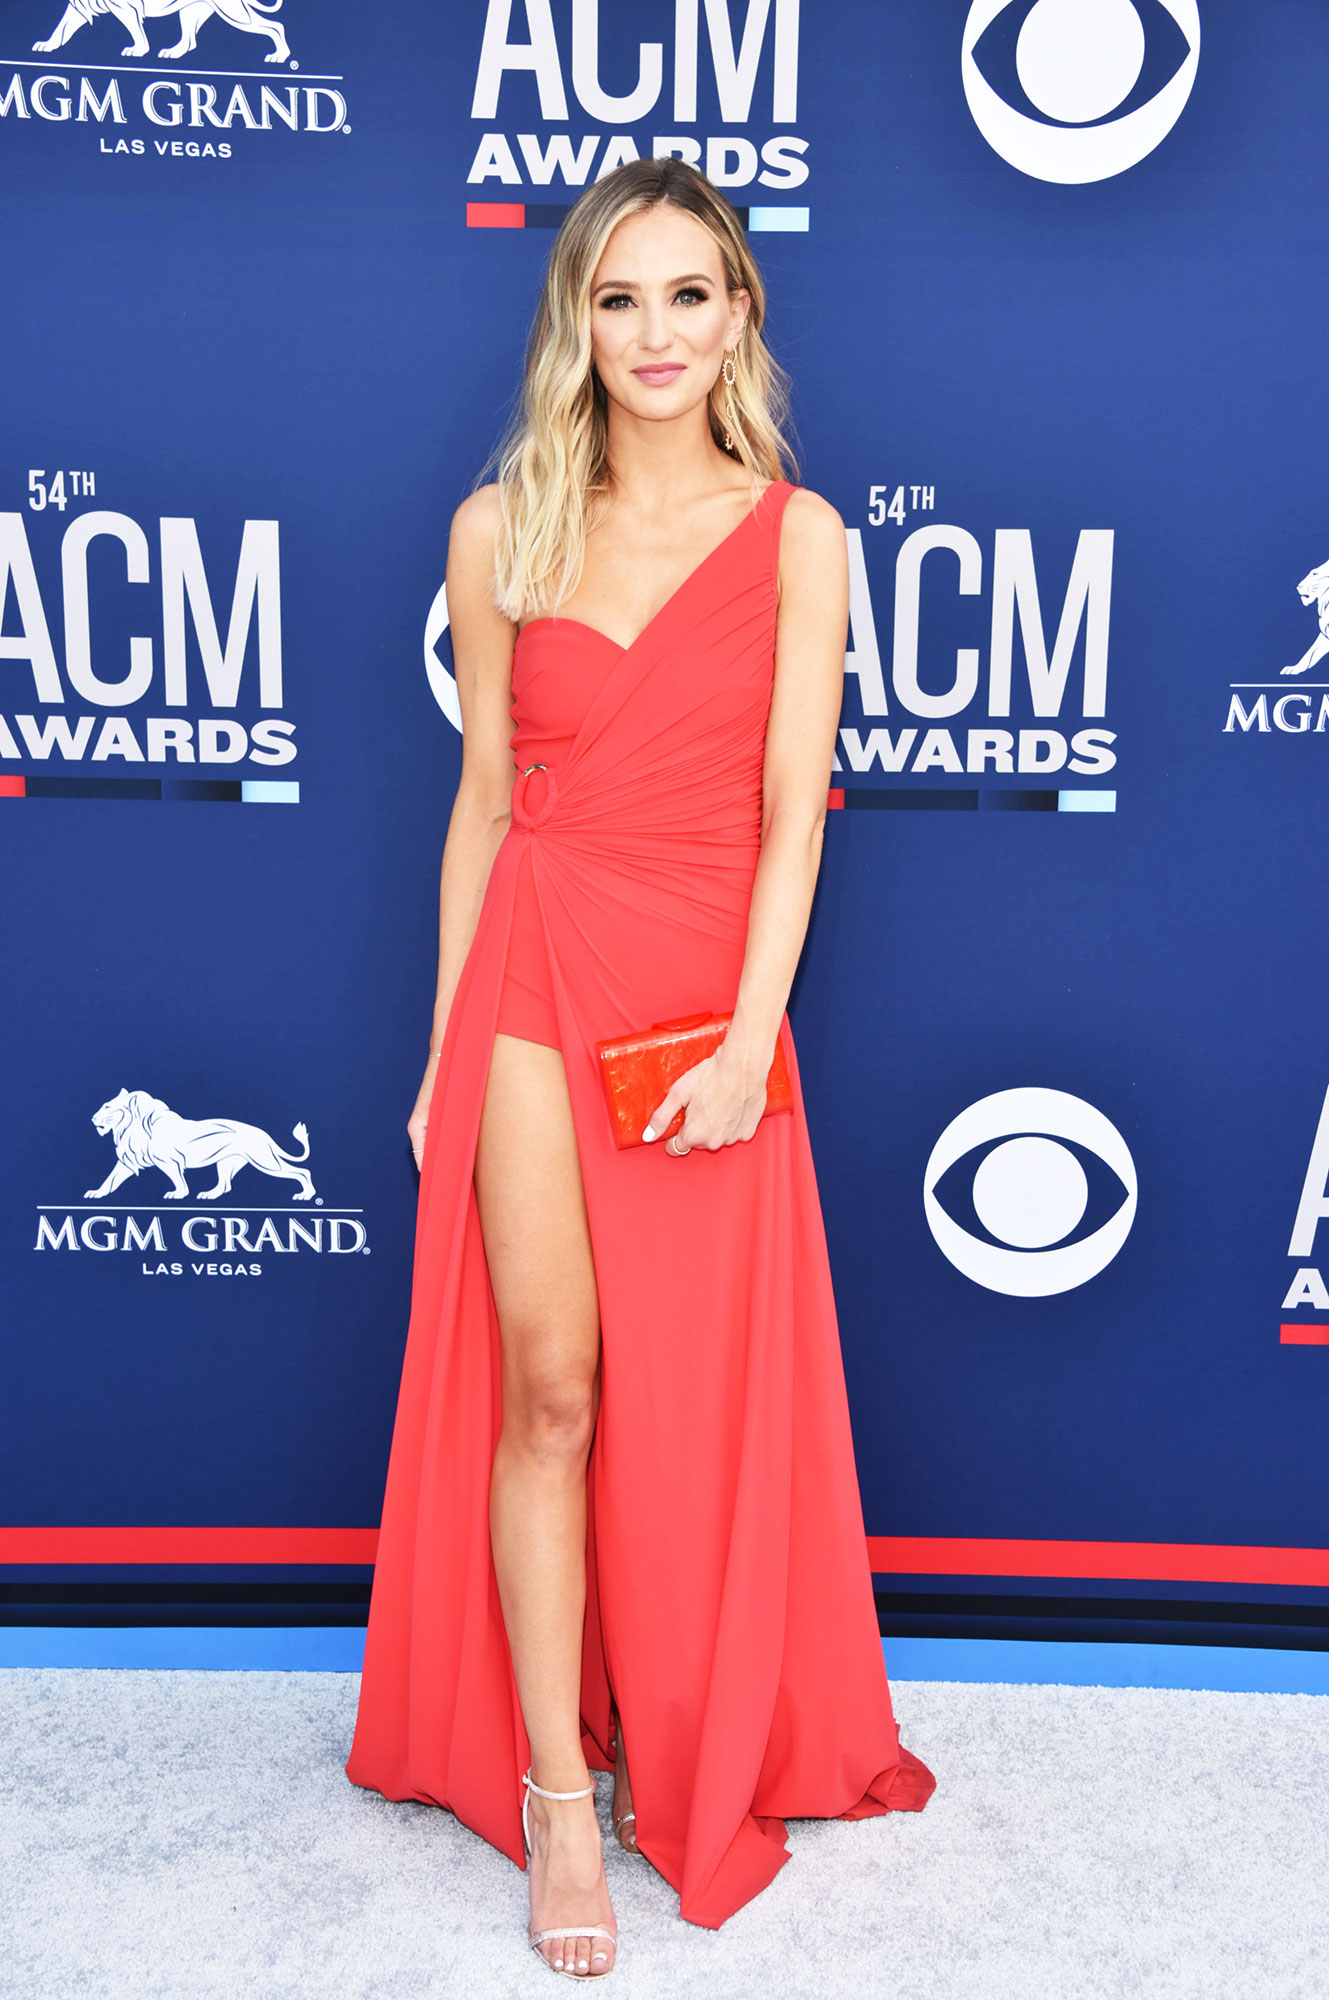 Lauren Bushnell The Best Looks From the Country Music Awards Red Carpet - The Bachelor alumn showed off her long limbs in a red dress with a thigh-high slit.